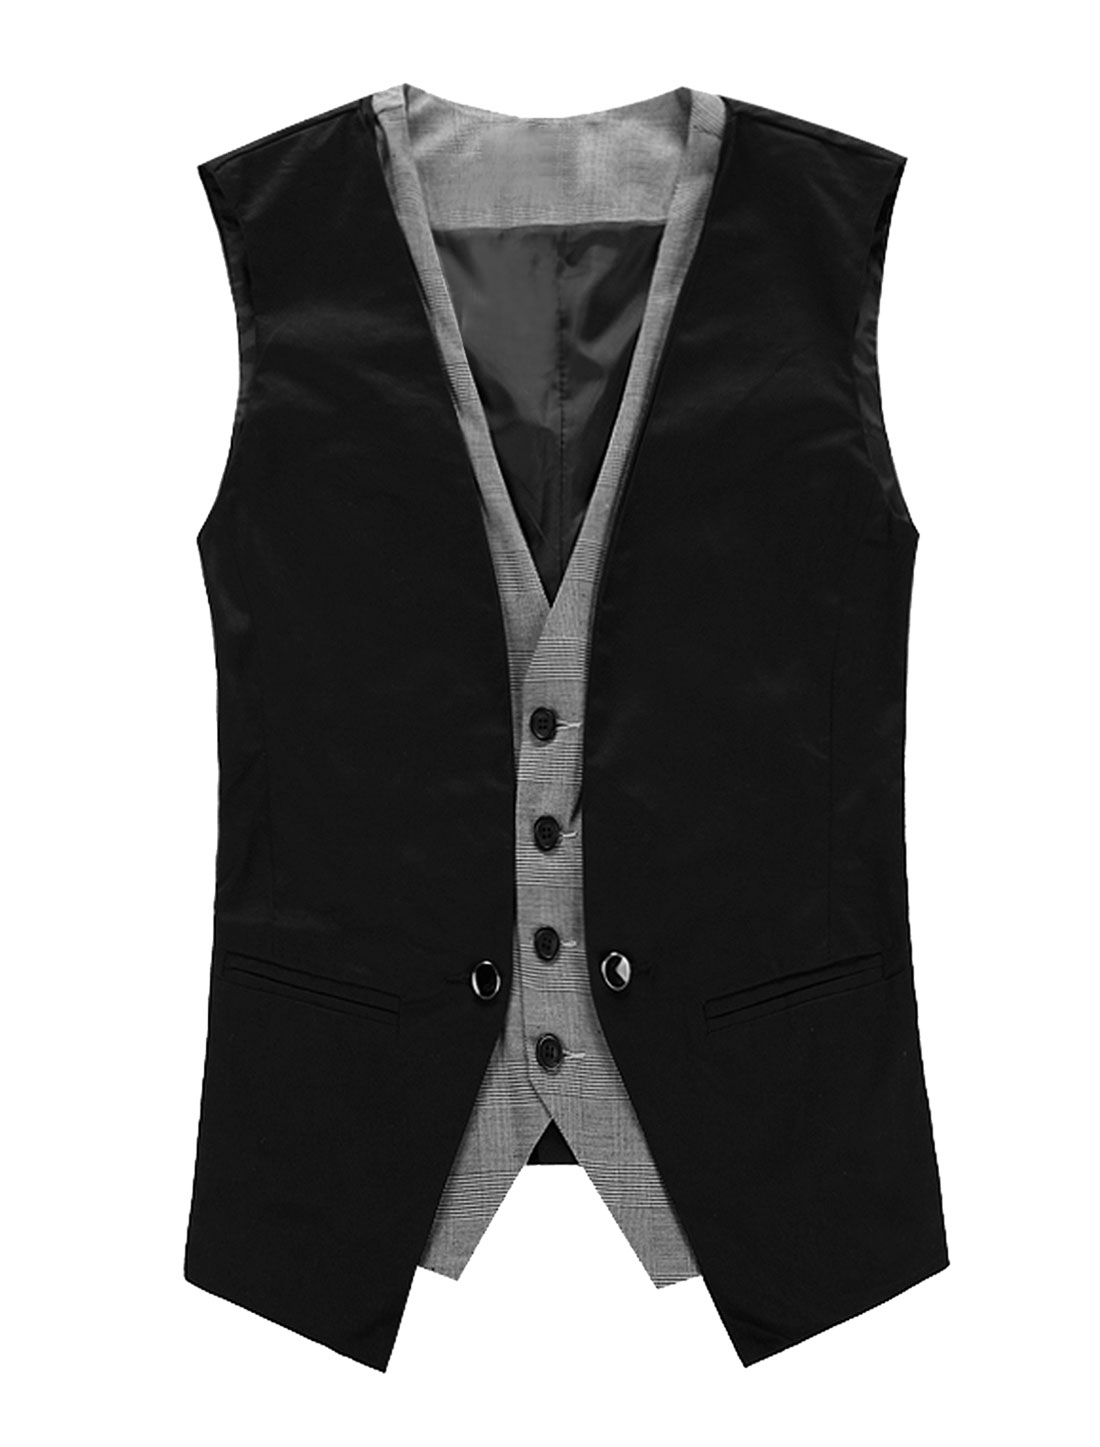 Men Button Down Closure V Neck Sleeveless Plaid Layered Waistcoat Vest Black M